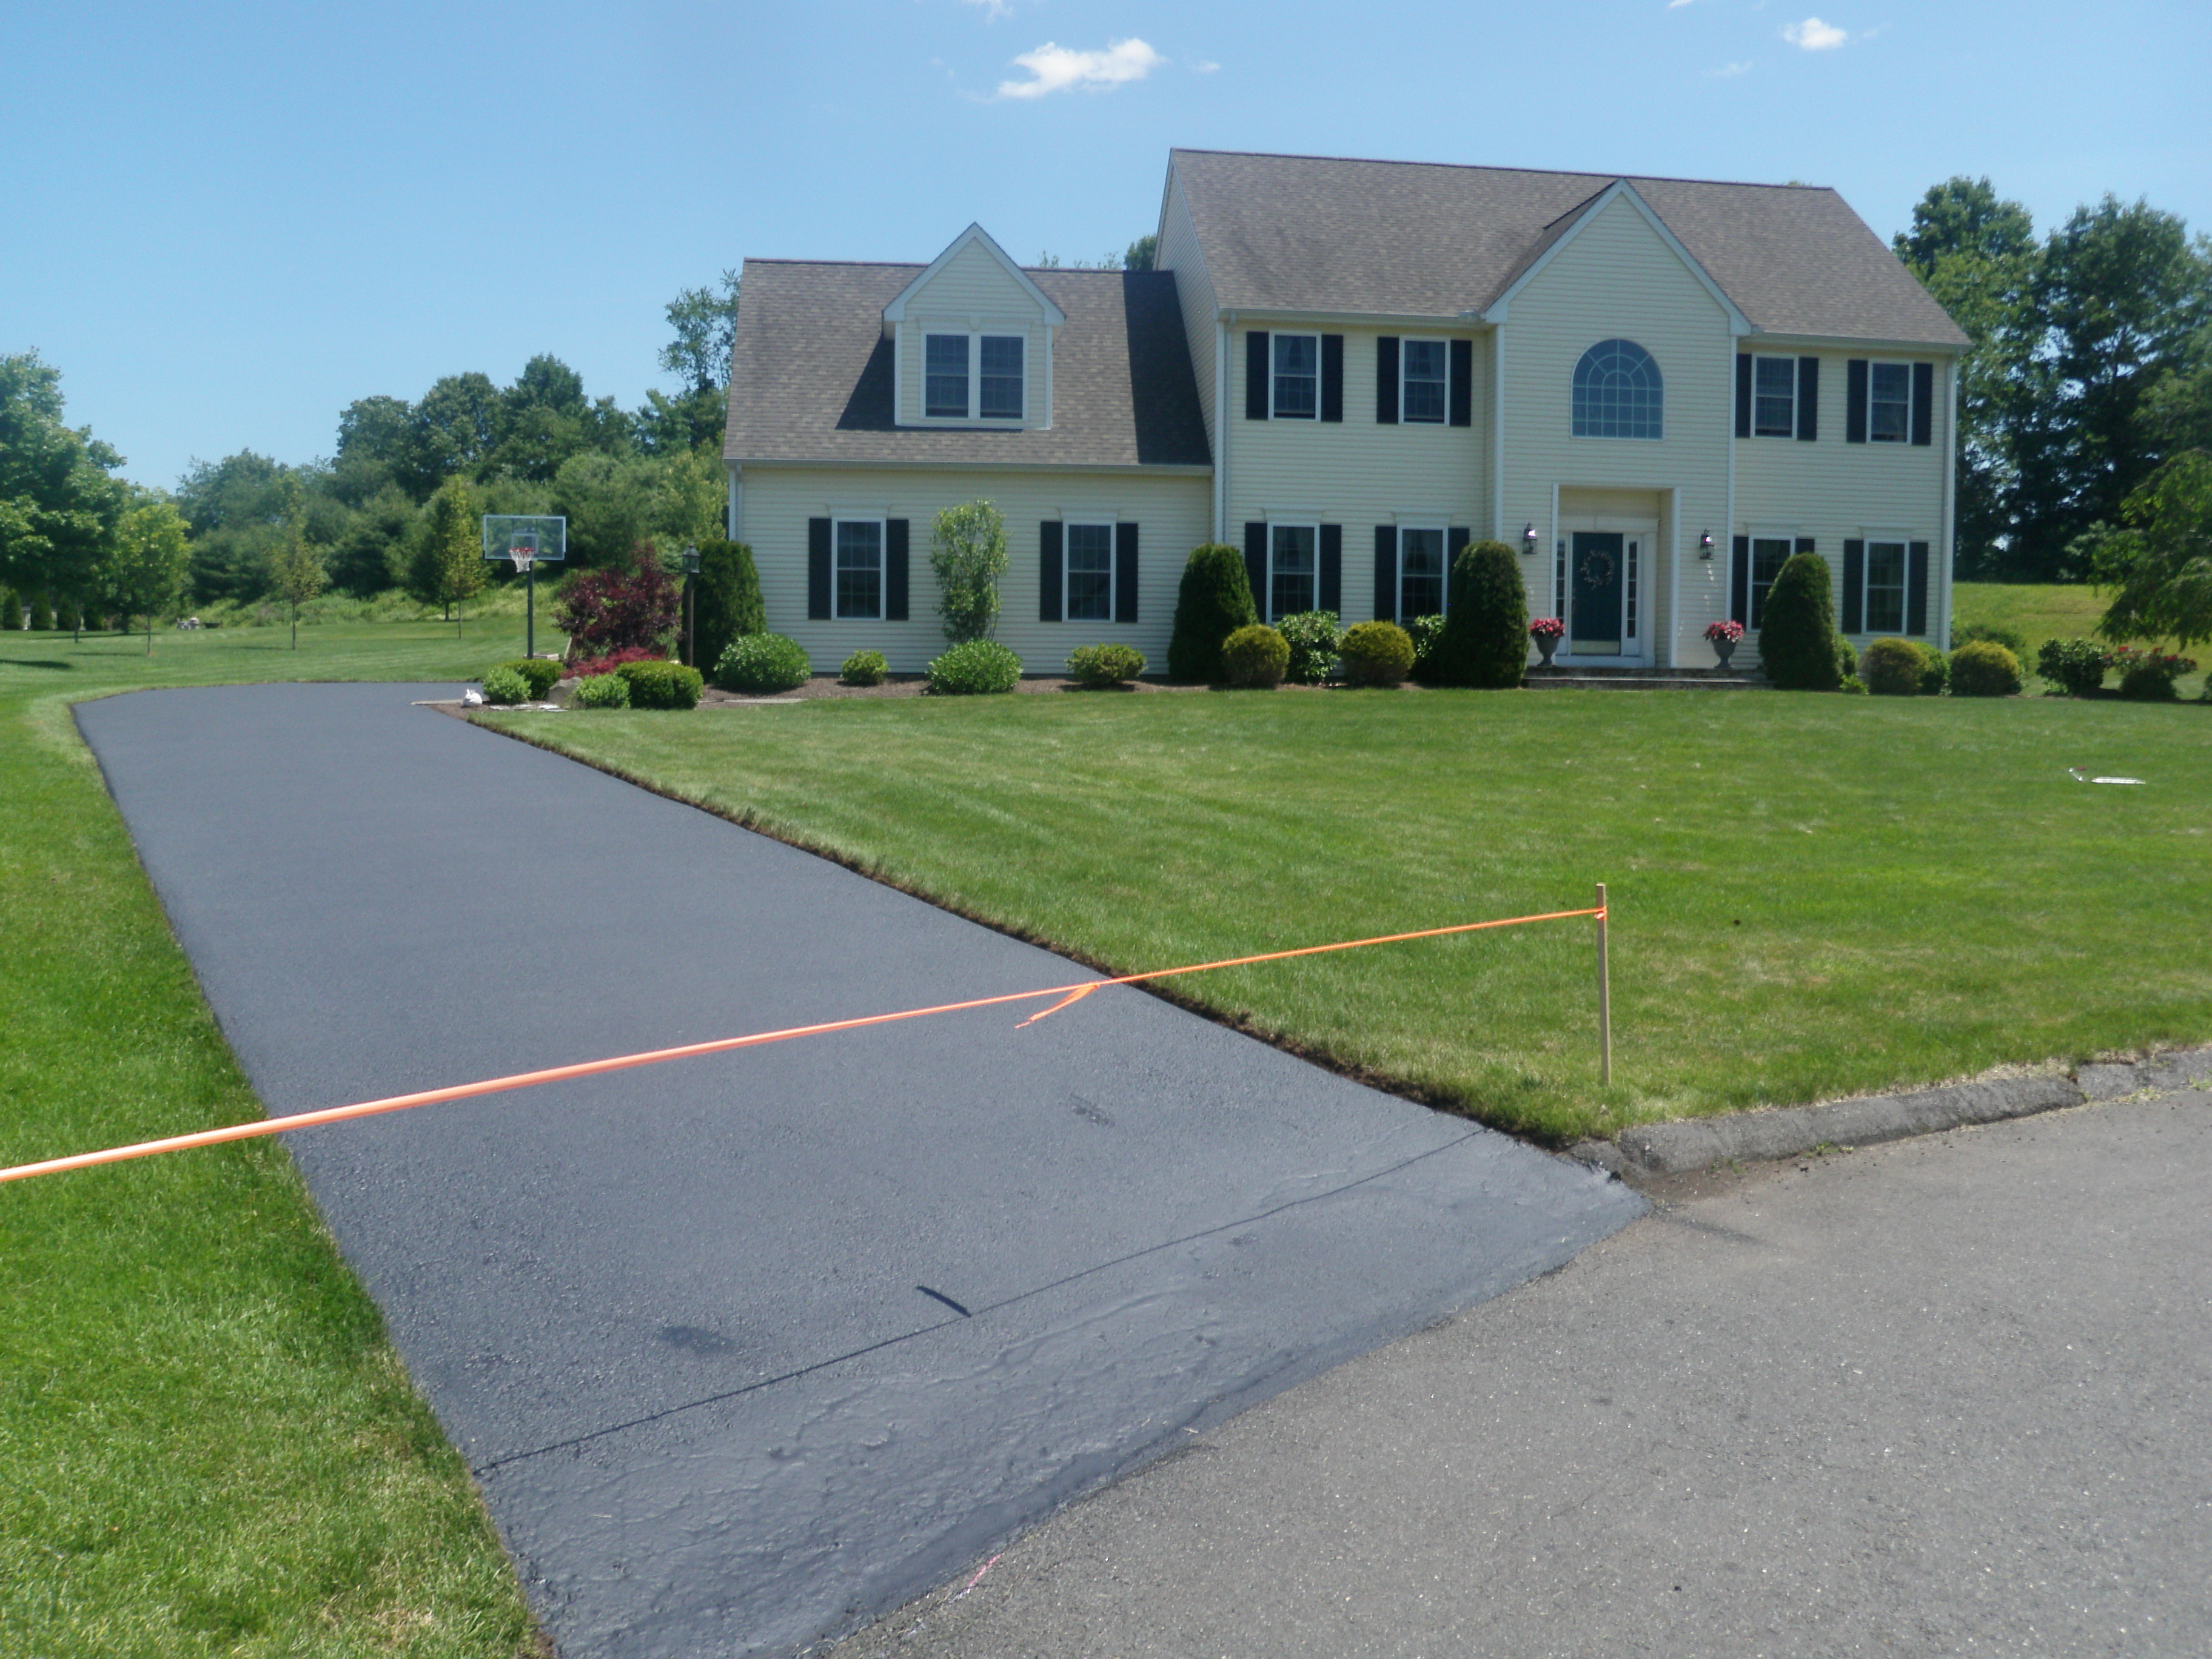 Finished Driveway Sealing Project 9